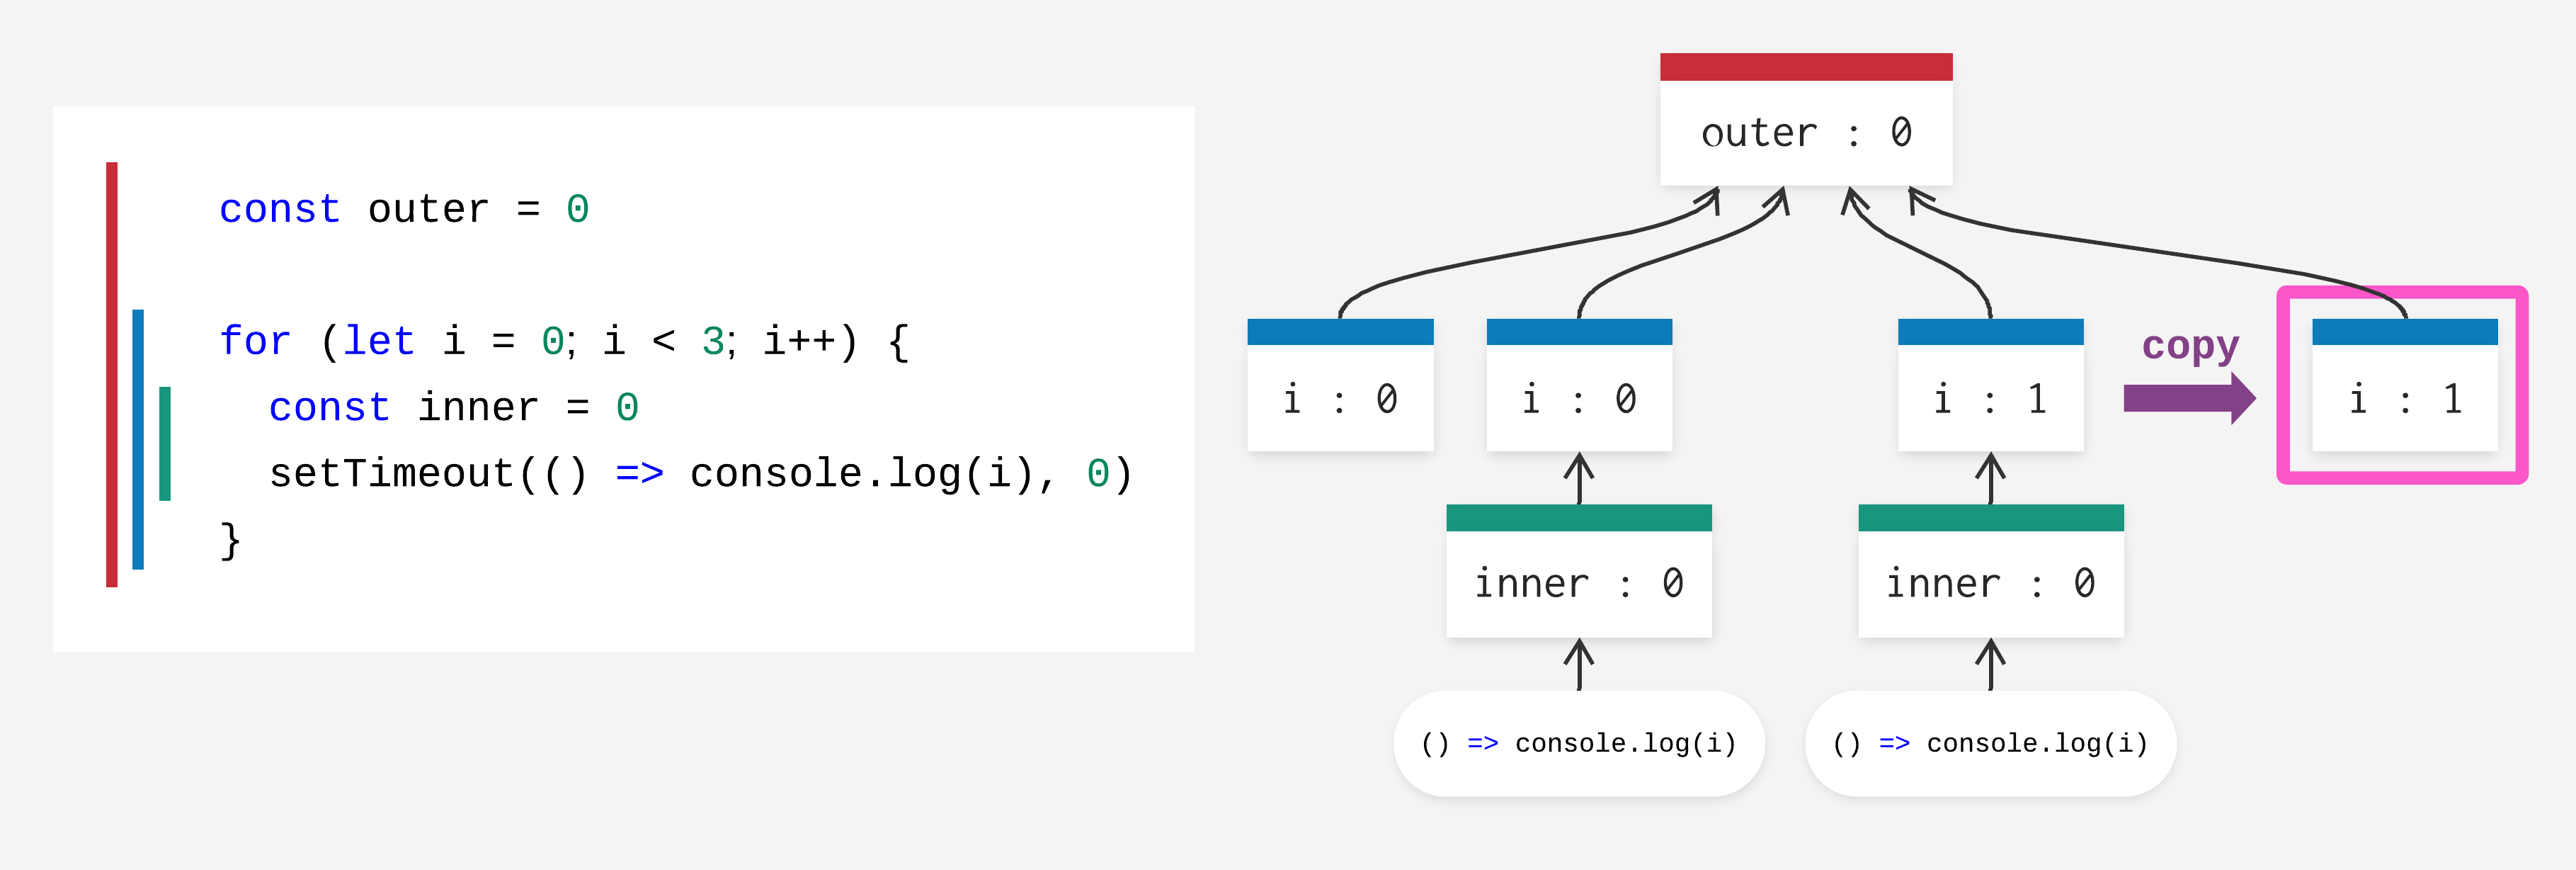 for-loop execution context9.png